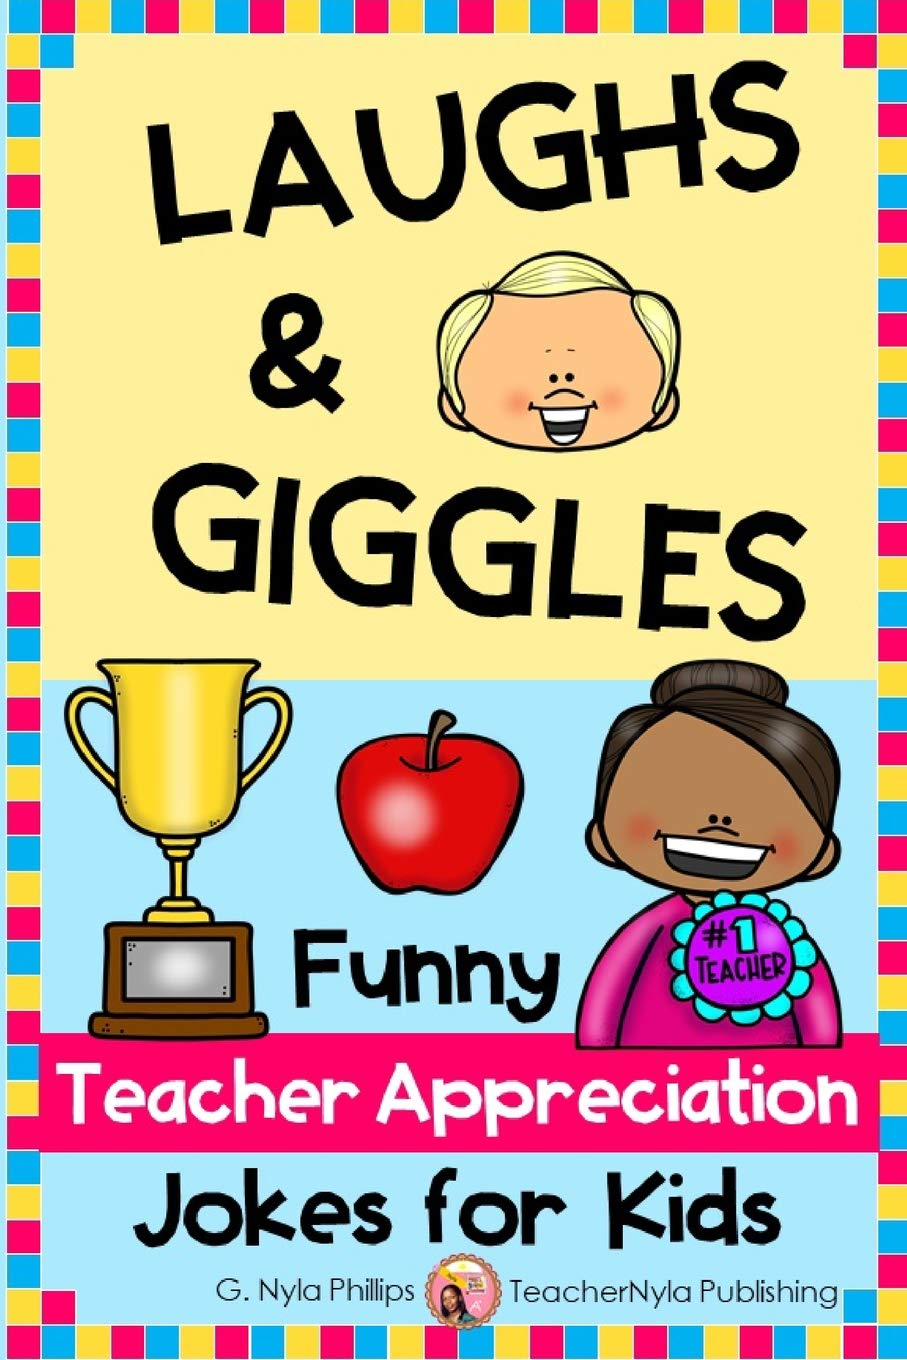 Laughs & Giggles: Funny Teacher Appreciation Jokes for Kids